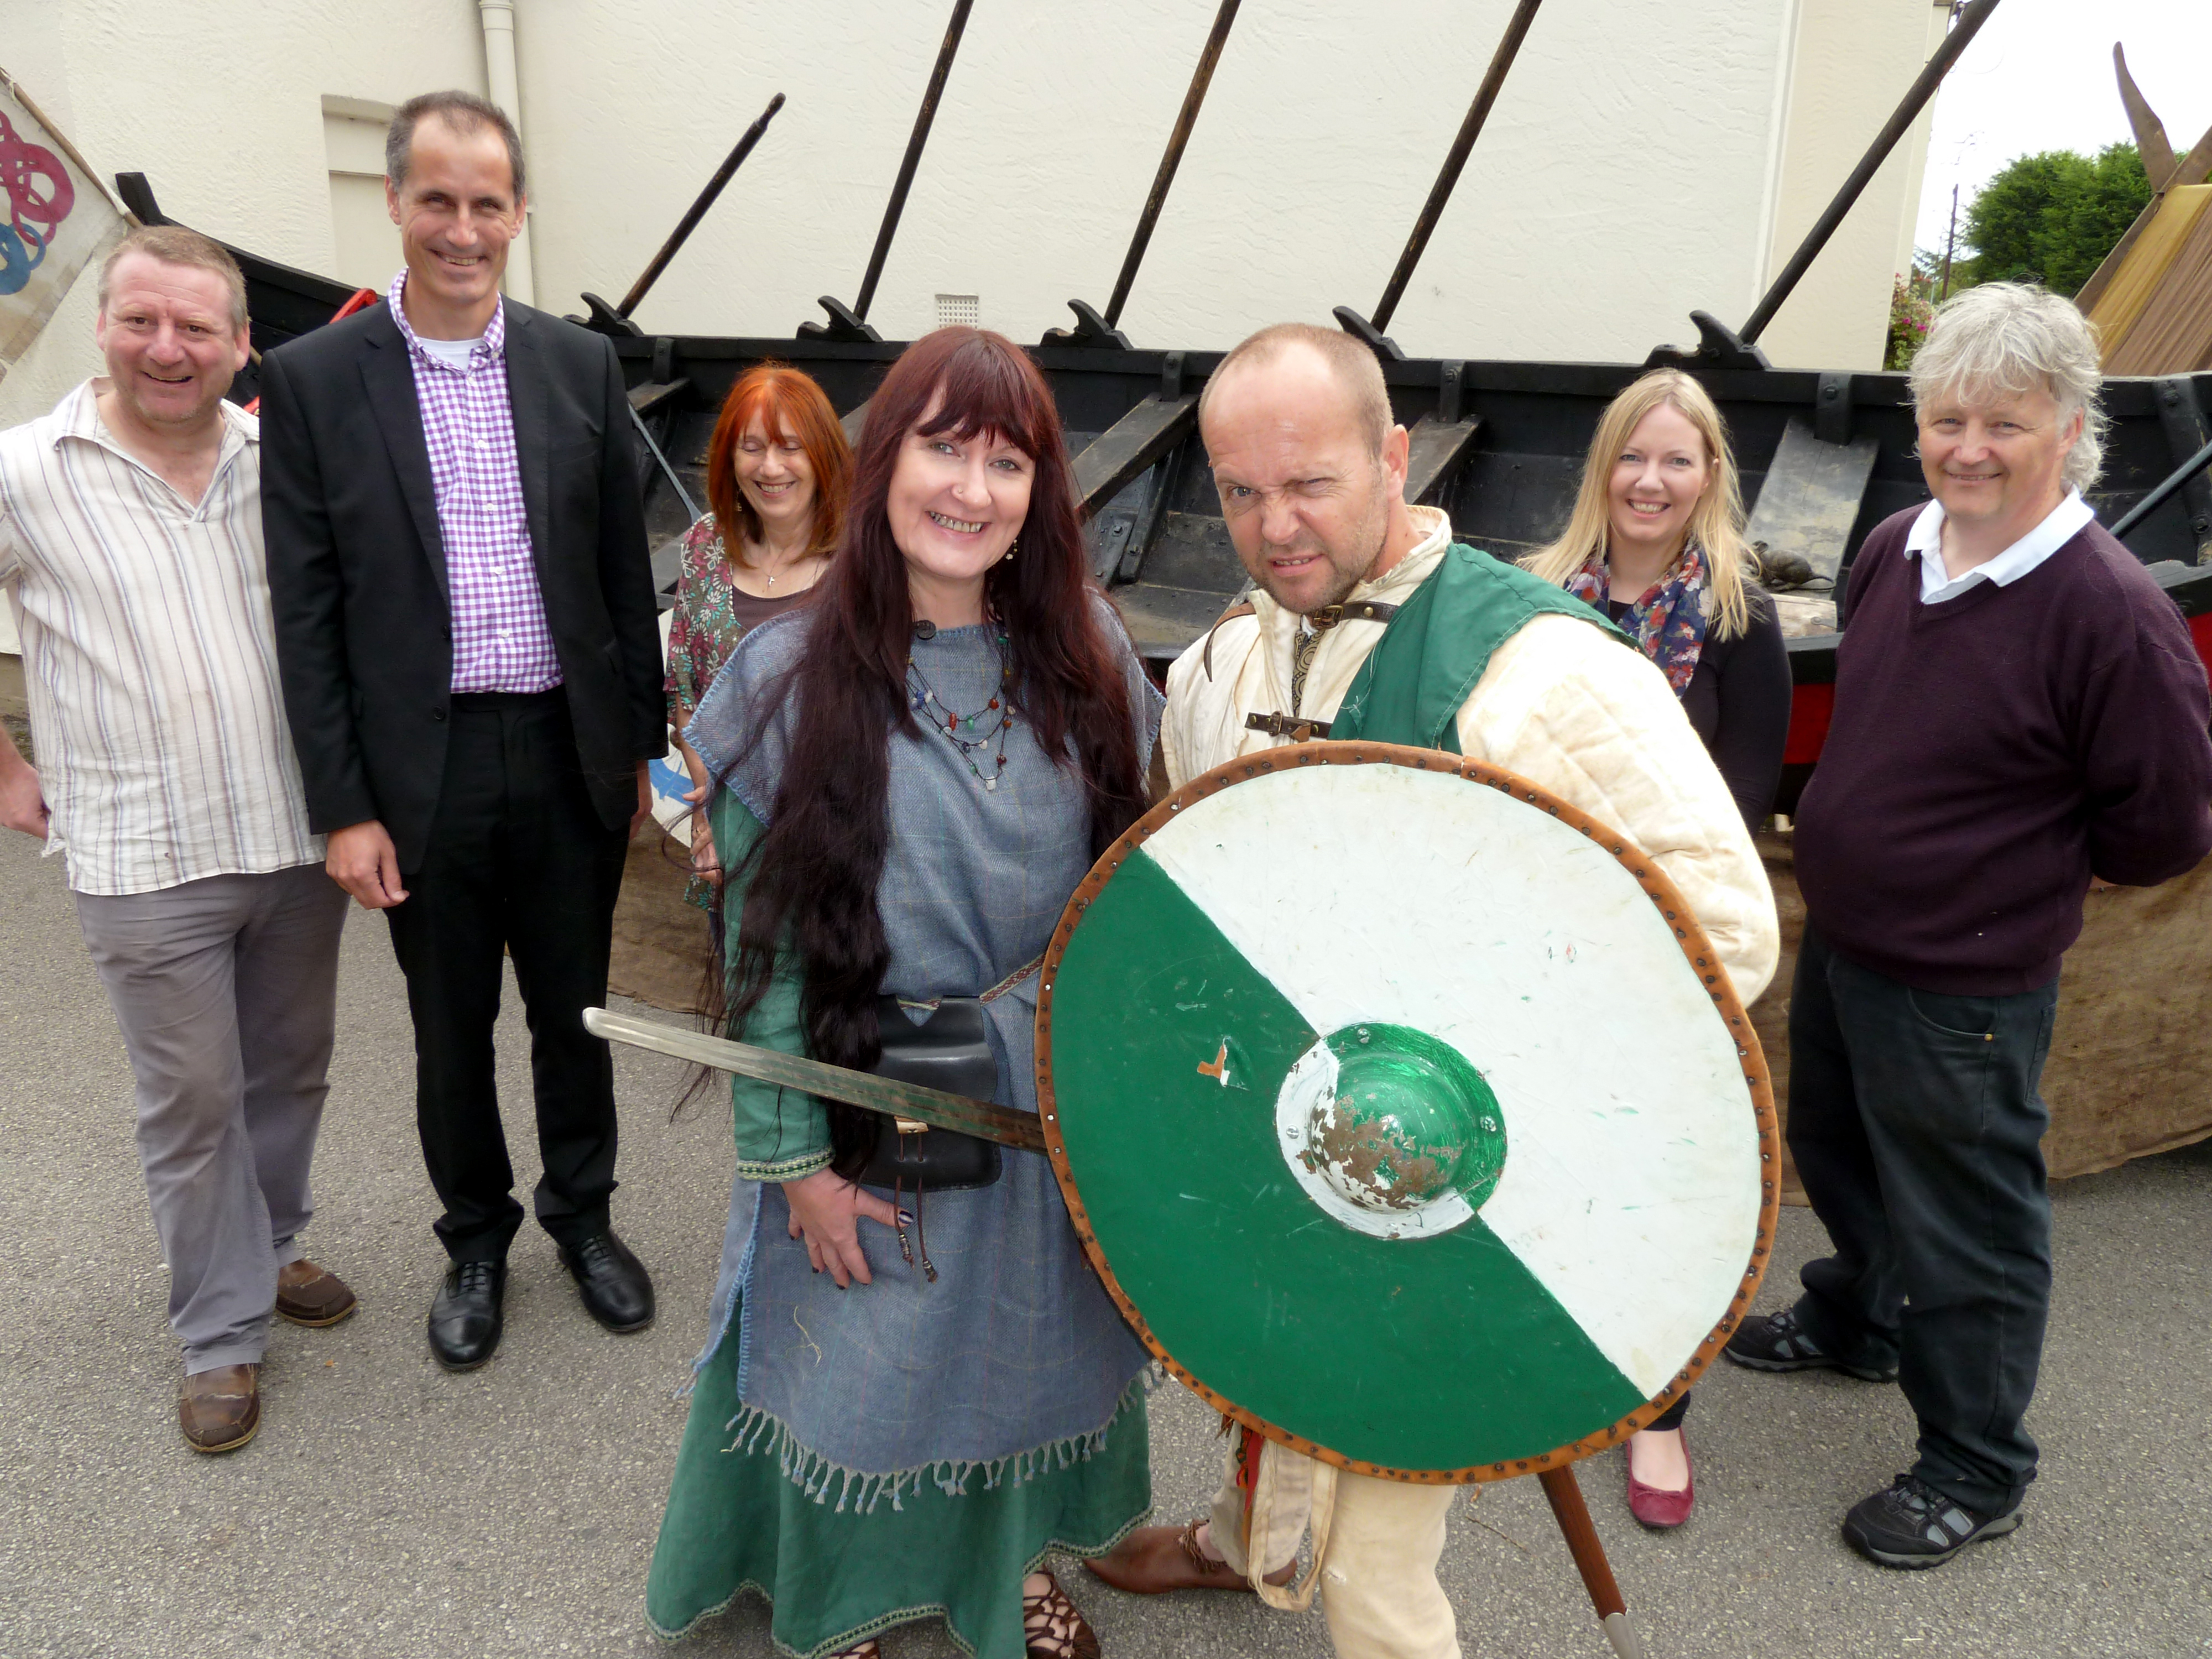 Formby Viking Medieval Market organisers with Viking maiden Pauline Clarke and 12th Century Welsh Mercenary Rick Manning.